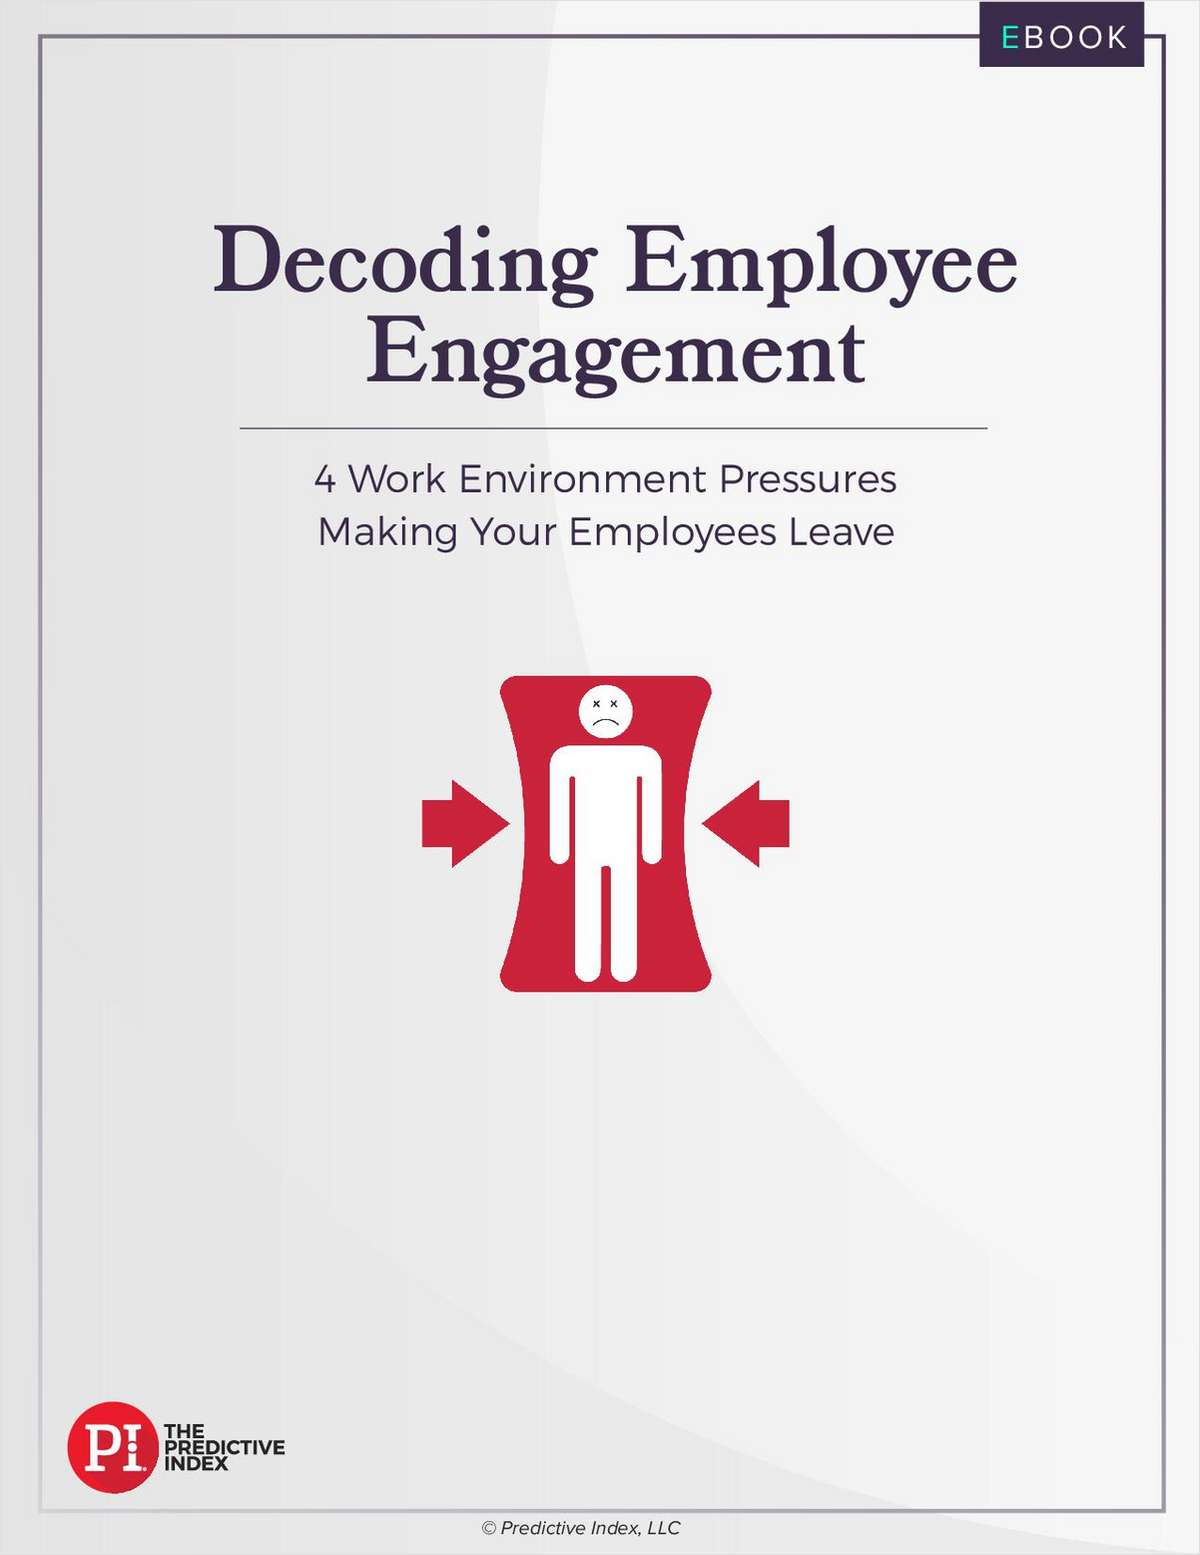 Decoding Employee Engagement